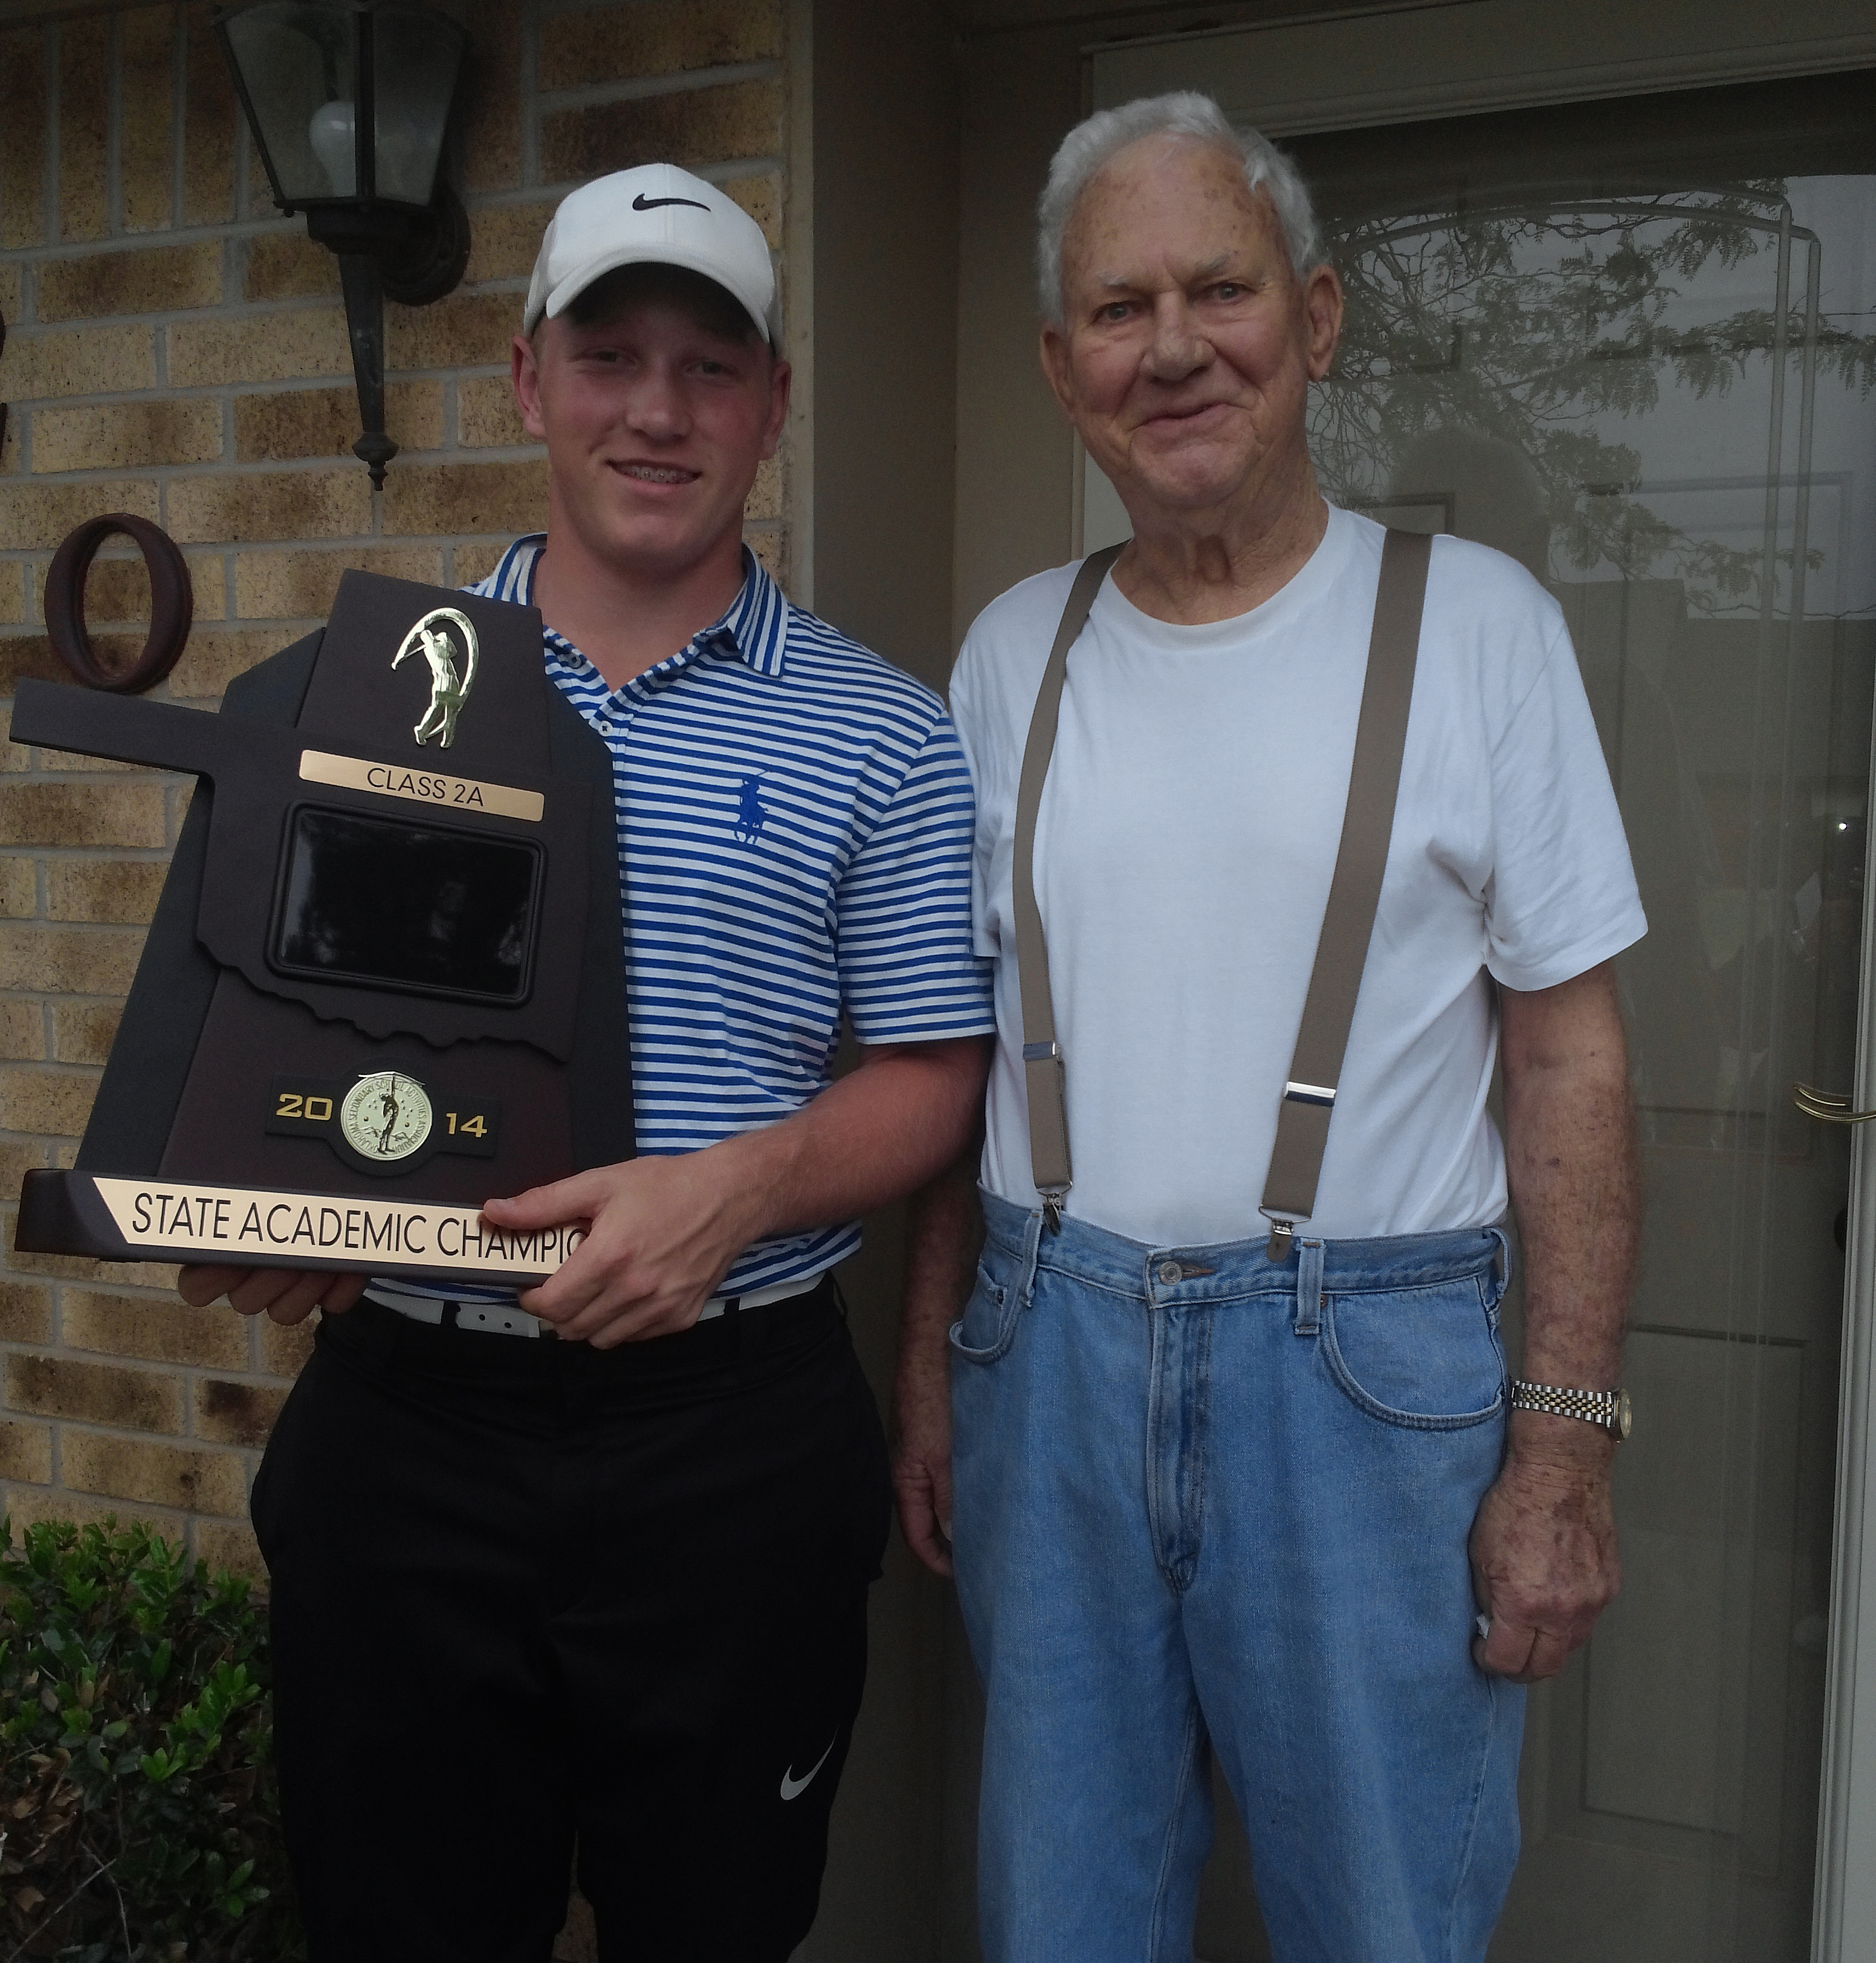 Brad Dalke holds the Oklahoma 2A Academic State Championship trophy alongside one of his biggest supporters in Hobart, Okla., Byron Shook.